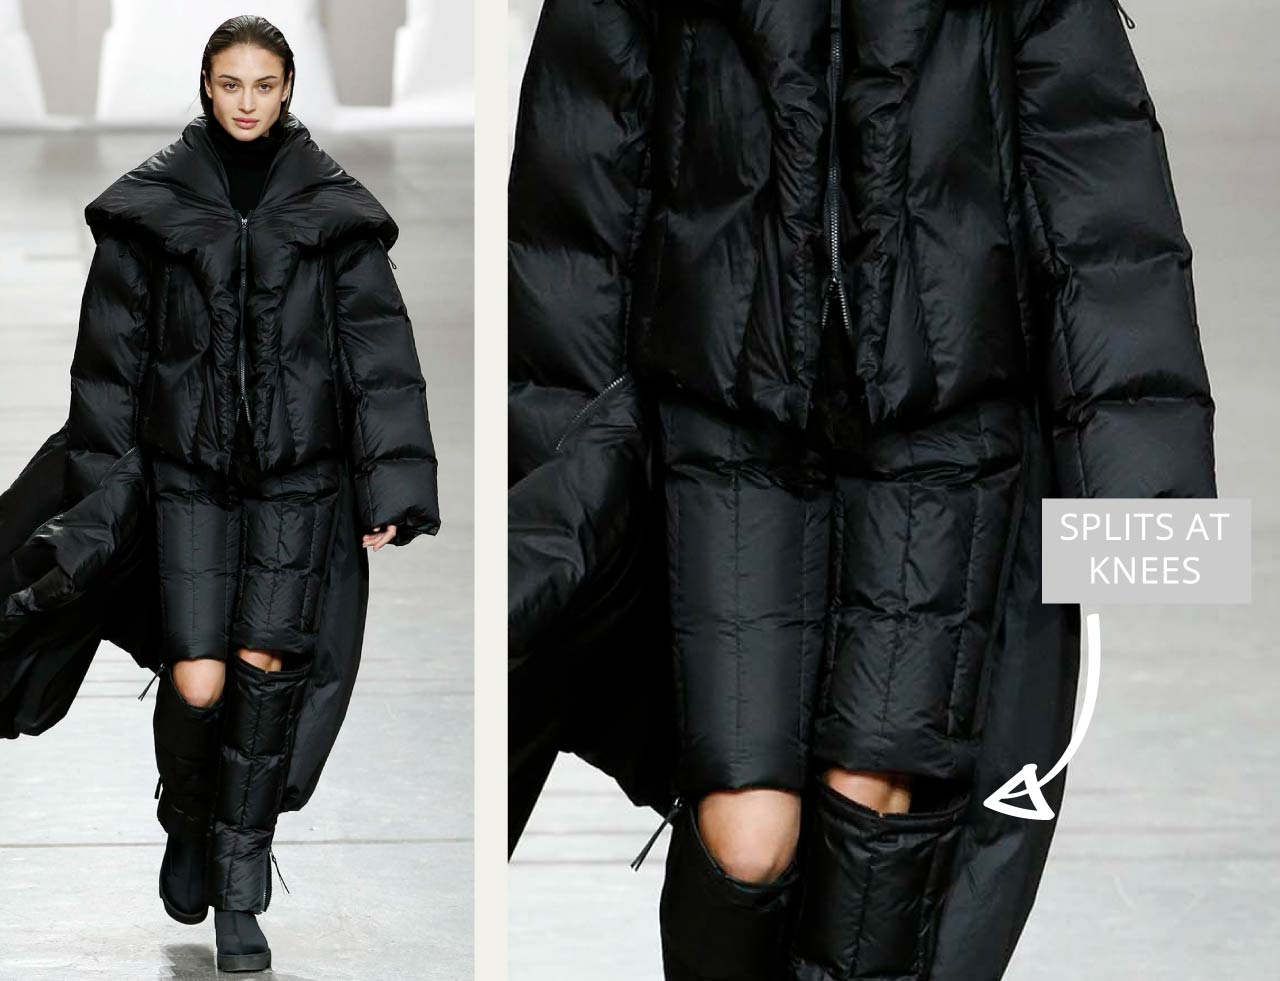 Connected Knits and Layering at Issey Miyake | The Cutting Class. Black puffer pieces with splits at knees. AW20.